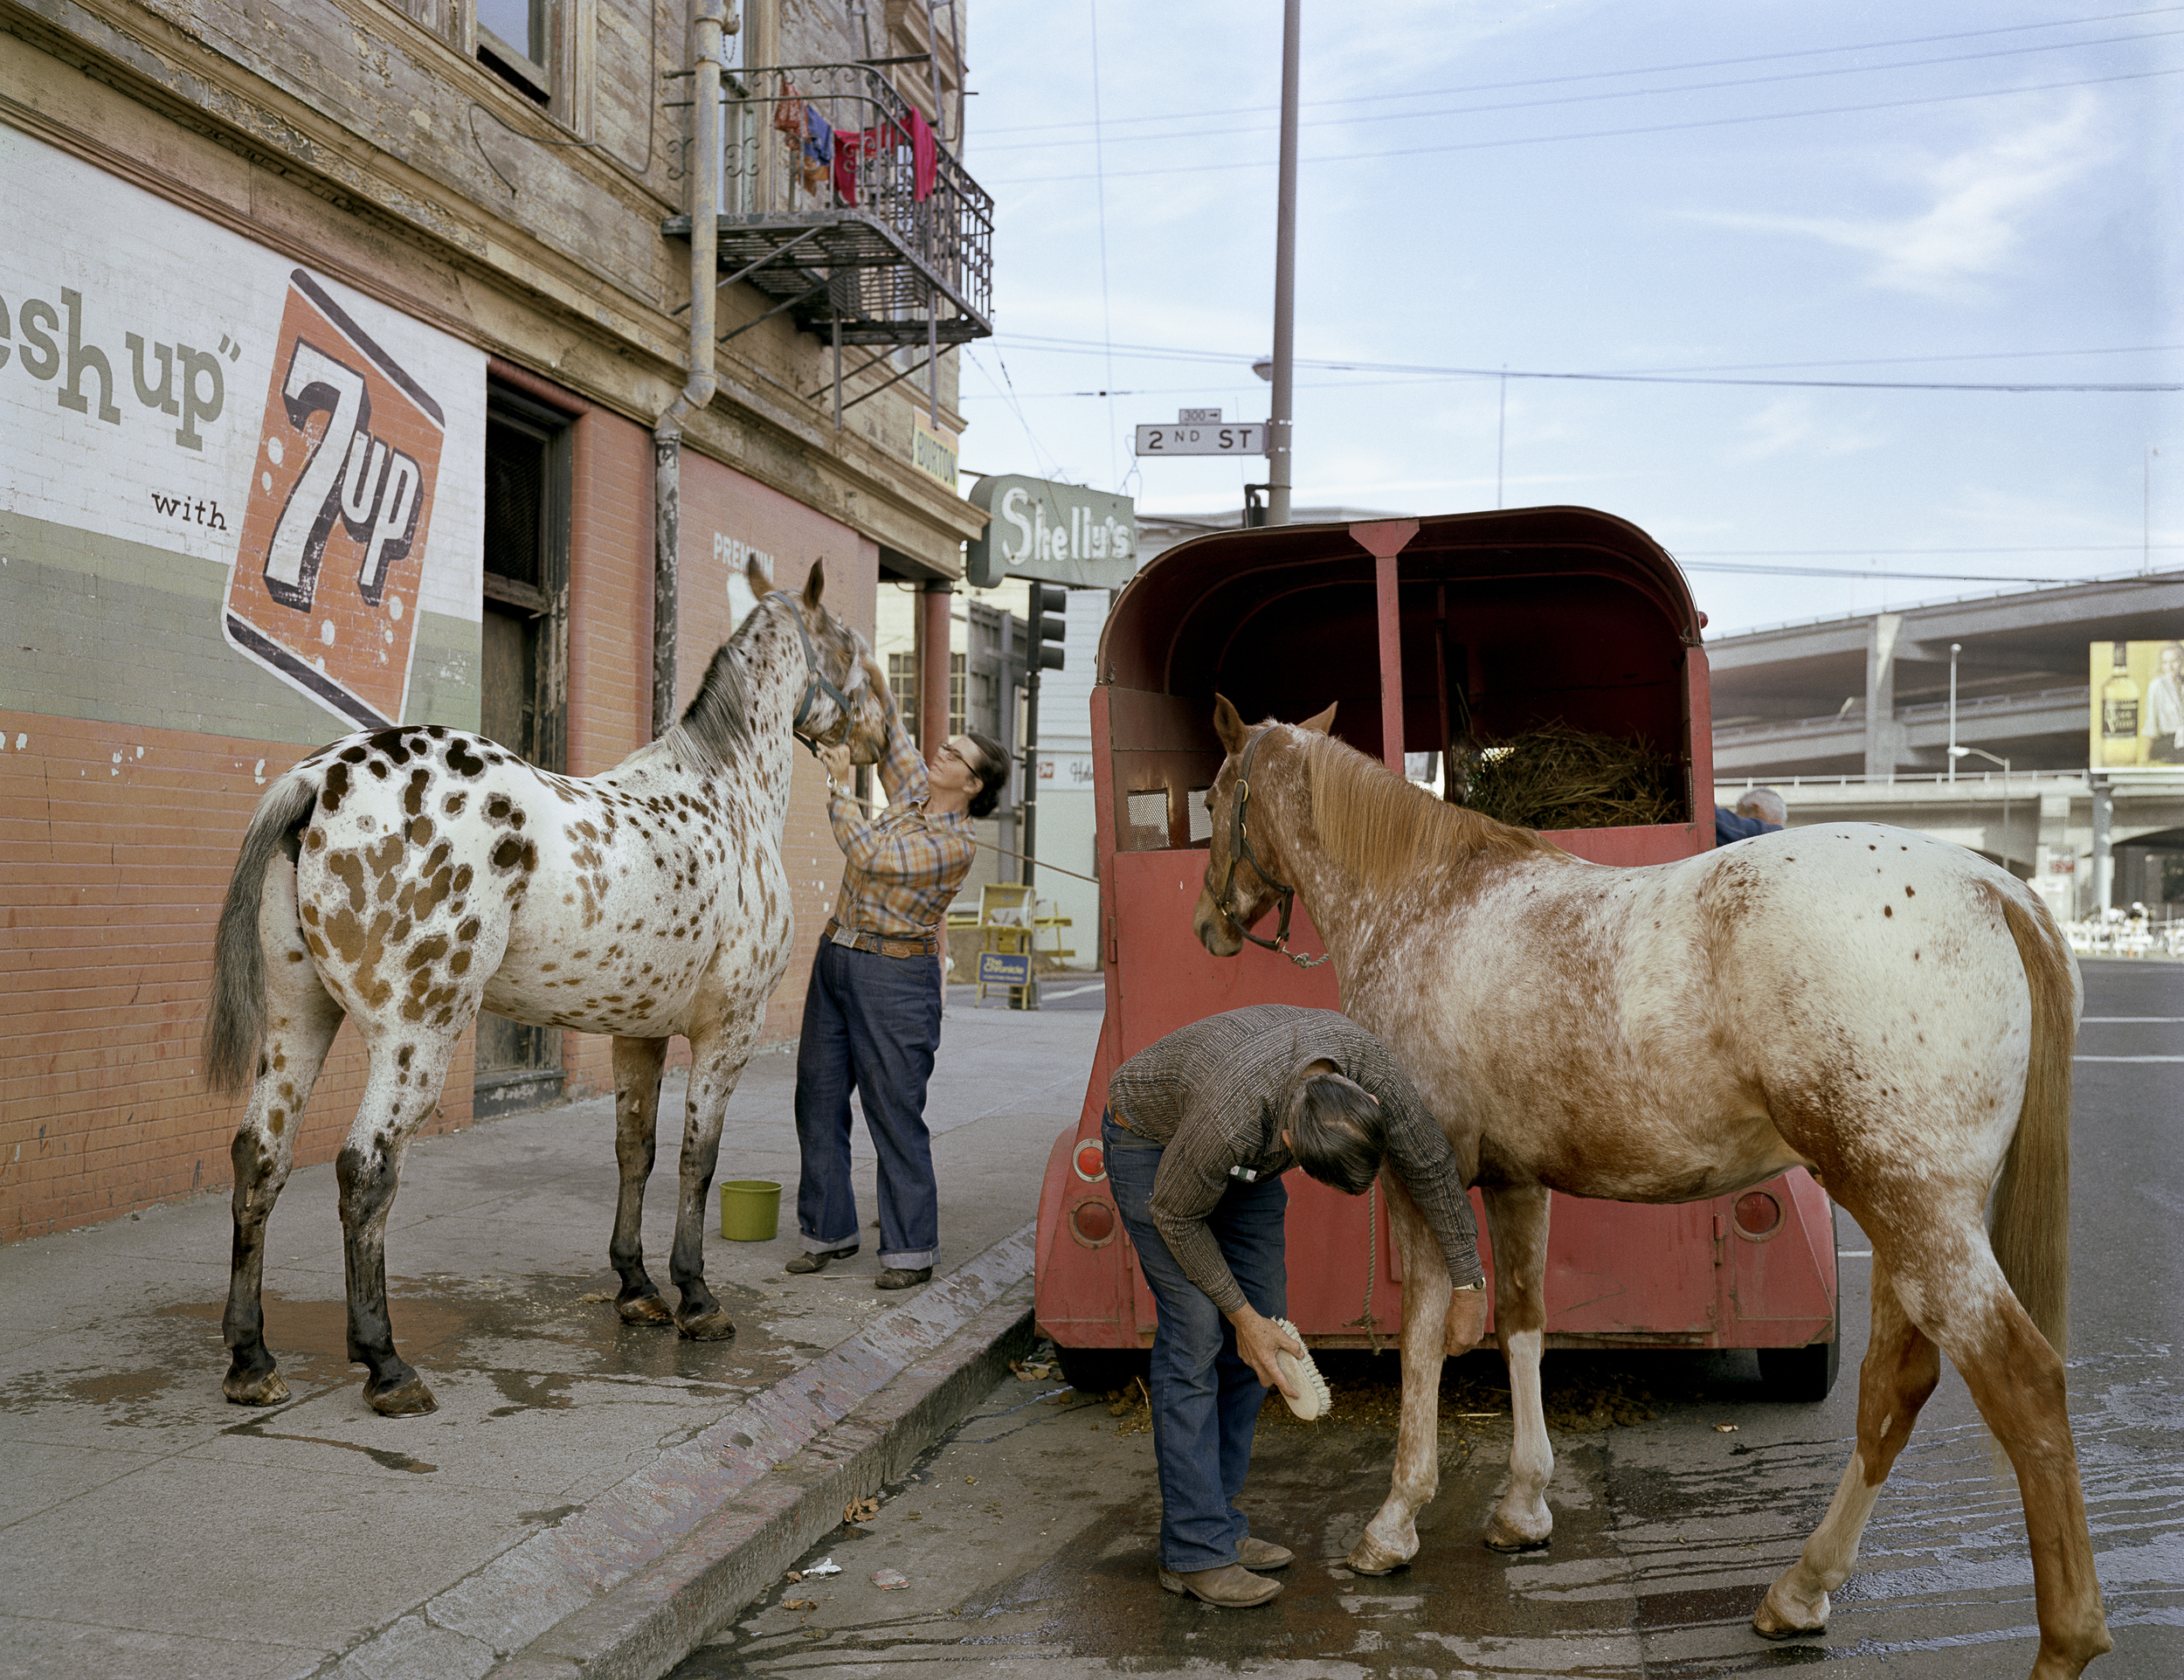 JANET DELANEY Skip Wheeler and his wife groom their horses after Veteran's Day Parade, Folsom at 2nd Street, 1980 Archival Pigment Print, 2016 16 x 20 inches, edition of 5 20 x 24 inches, edition of 2 30 x 40 inches, edition of 2